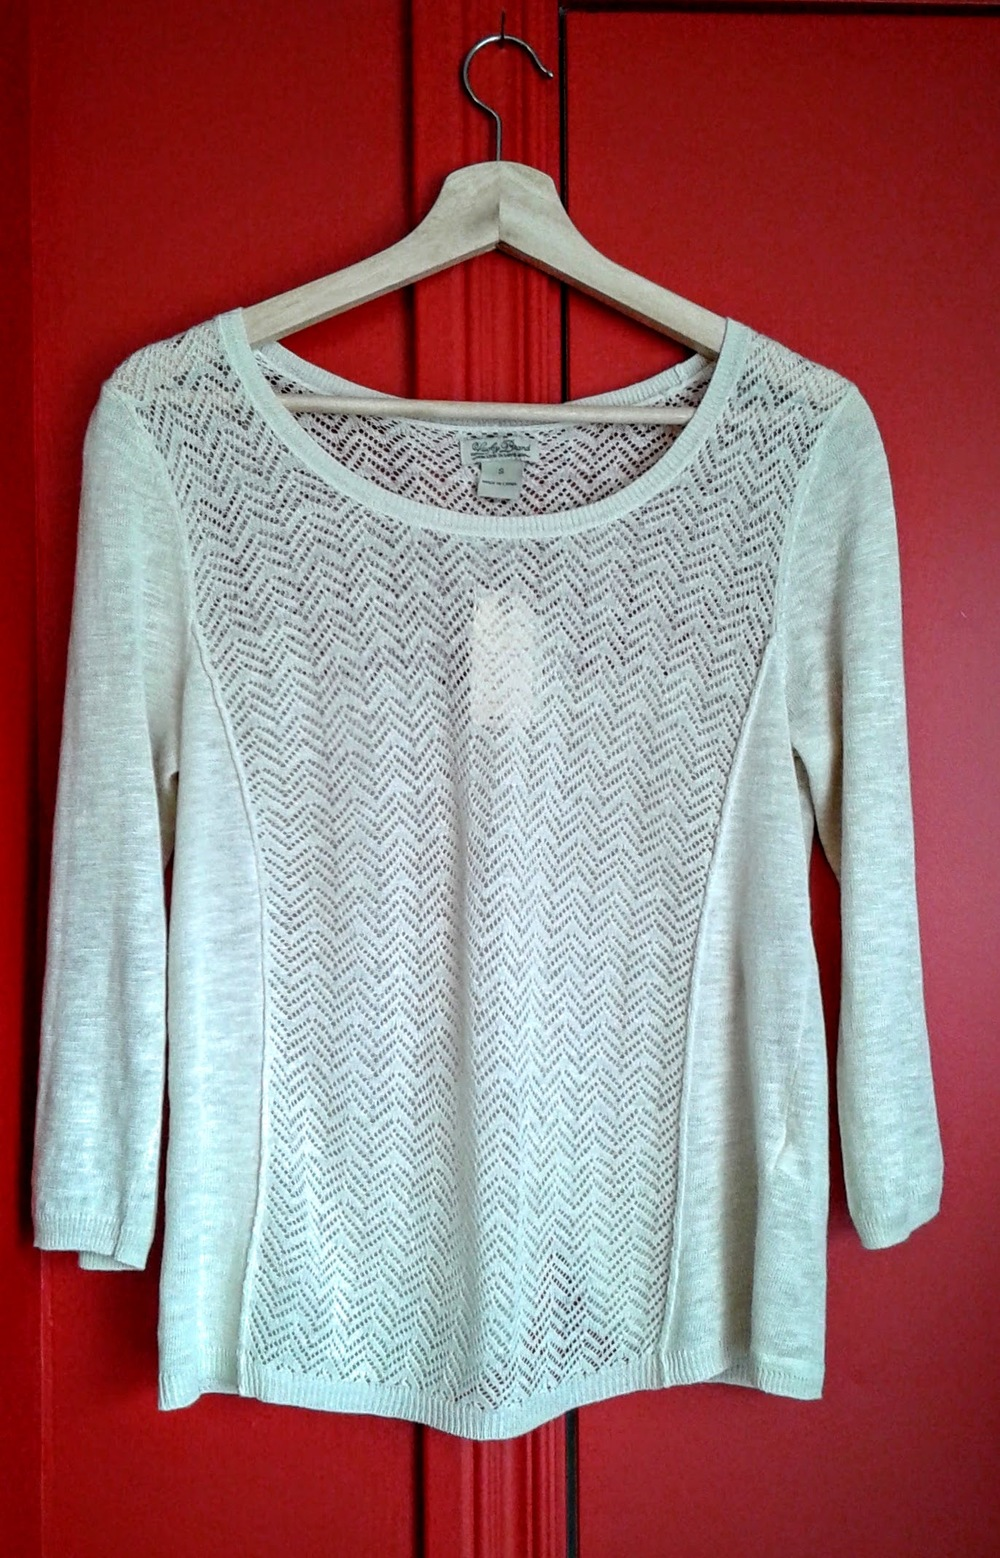 Lucky Brand sweater (NWT); Size S, $30